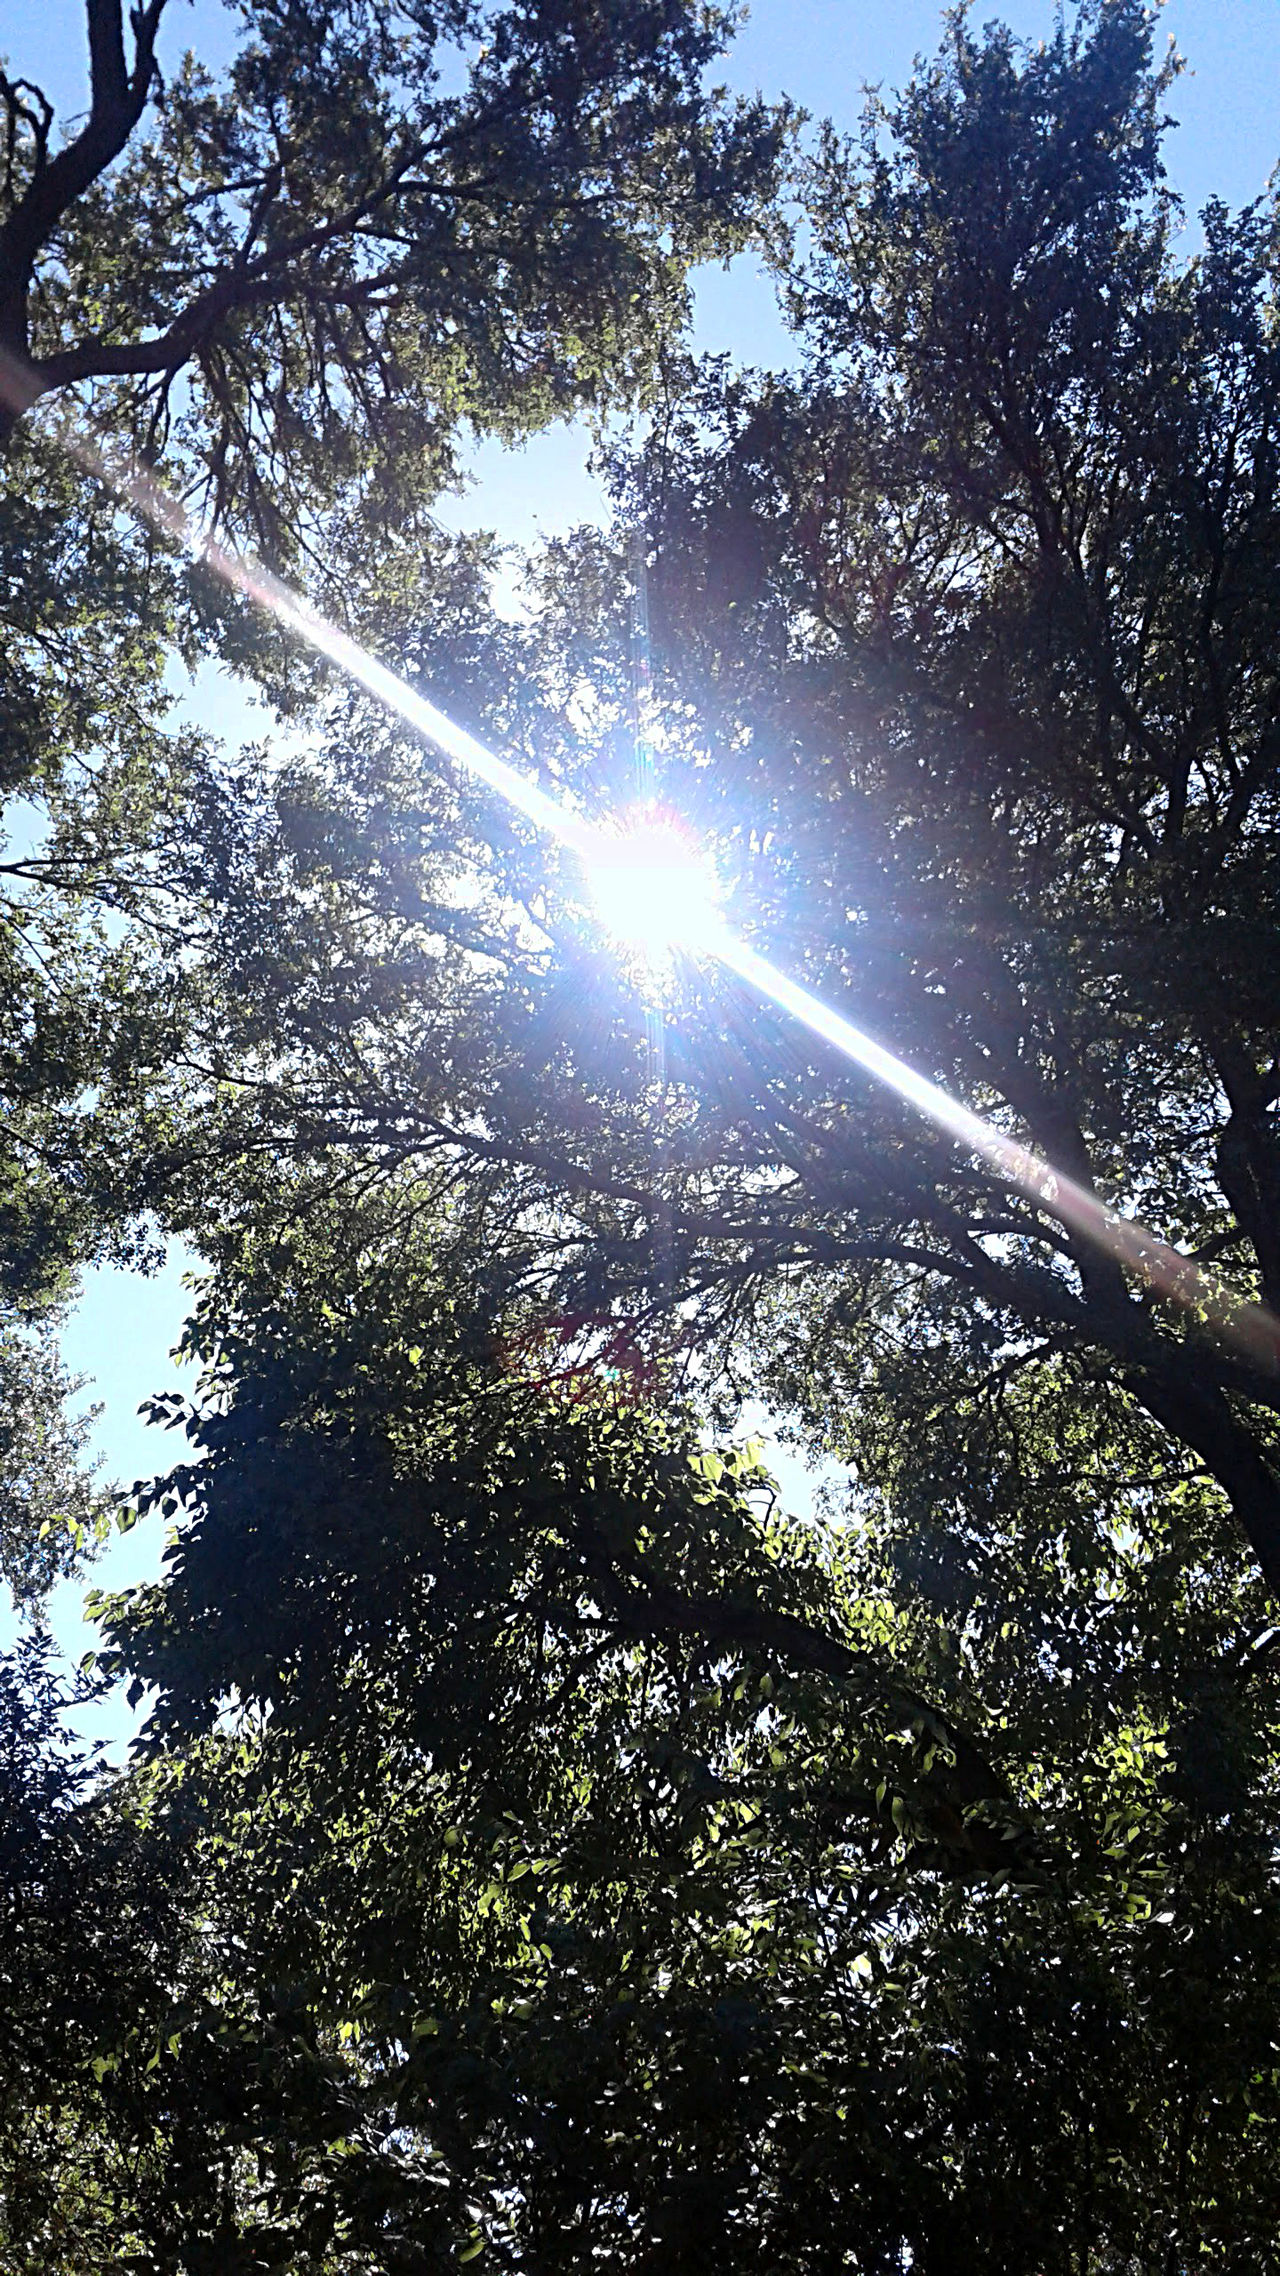 In the woods, bright light making star rays through the branches in the clear blue sky. Beauty In Nature Branch Day Forest Growth Lens Flare Light Low Angle View Nature No People Outdoors Ray Of Light Scenics Sky Sun Sunbeam Sunlight Sunlight Tranquility Tree